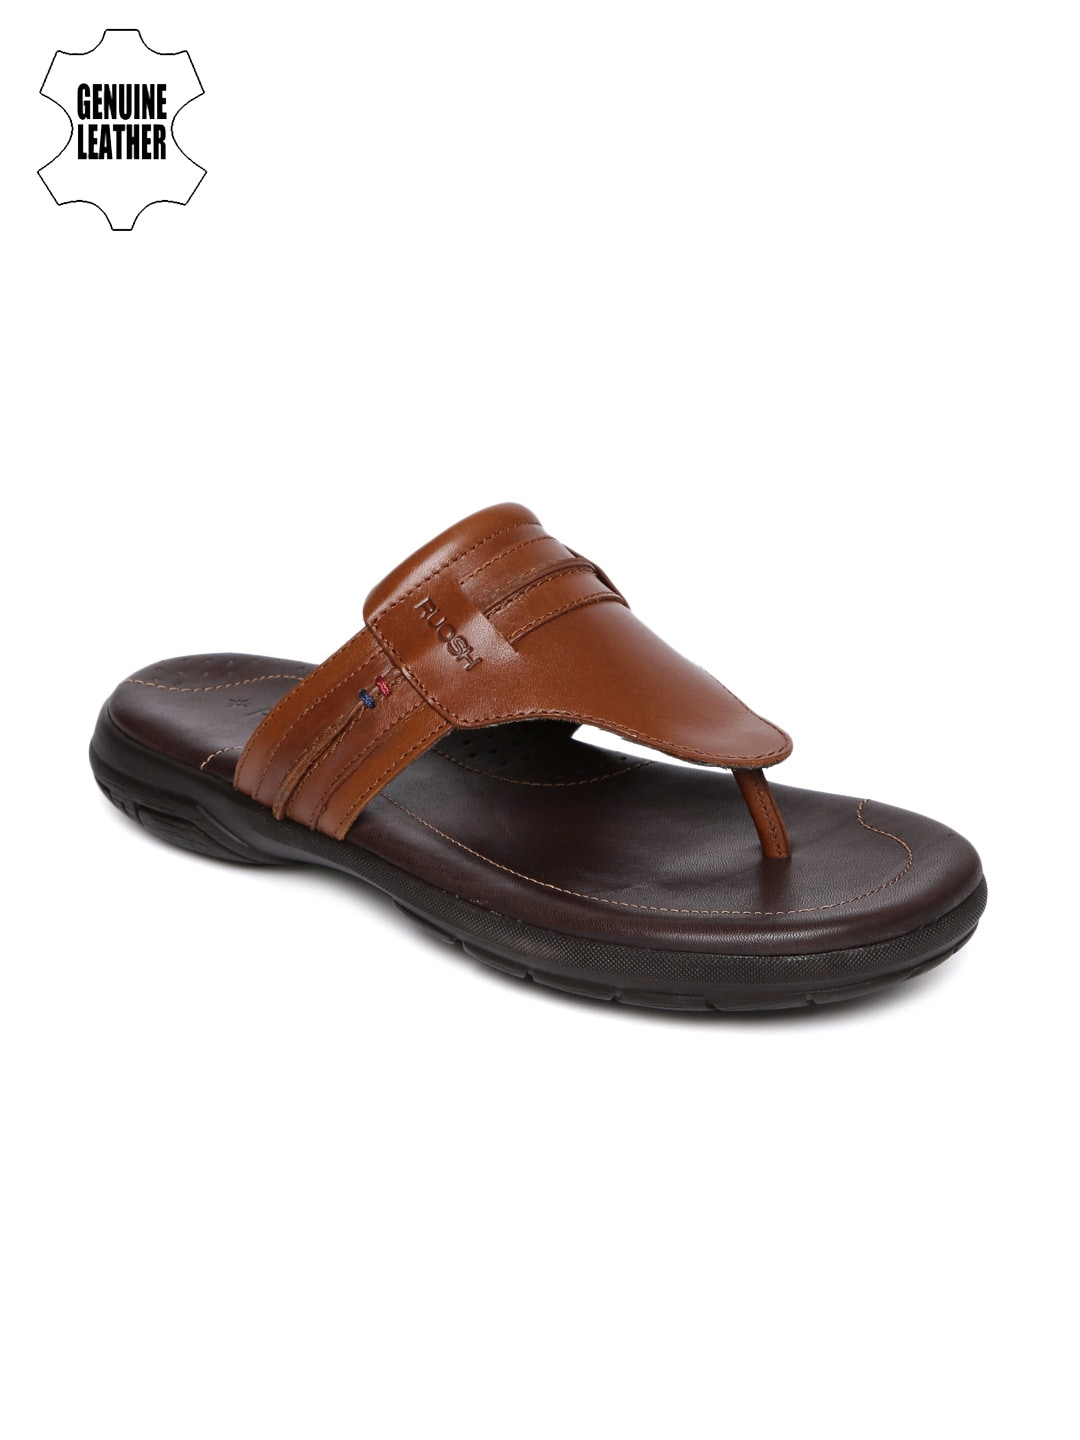 e7d11be2c64 Flat Sandals - Buy Flat Sandals Online in India